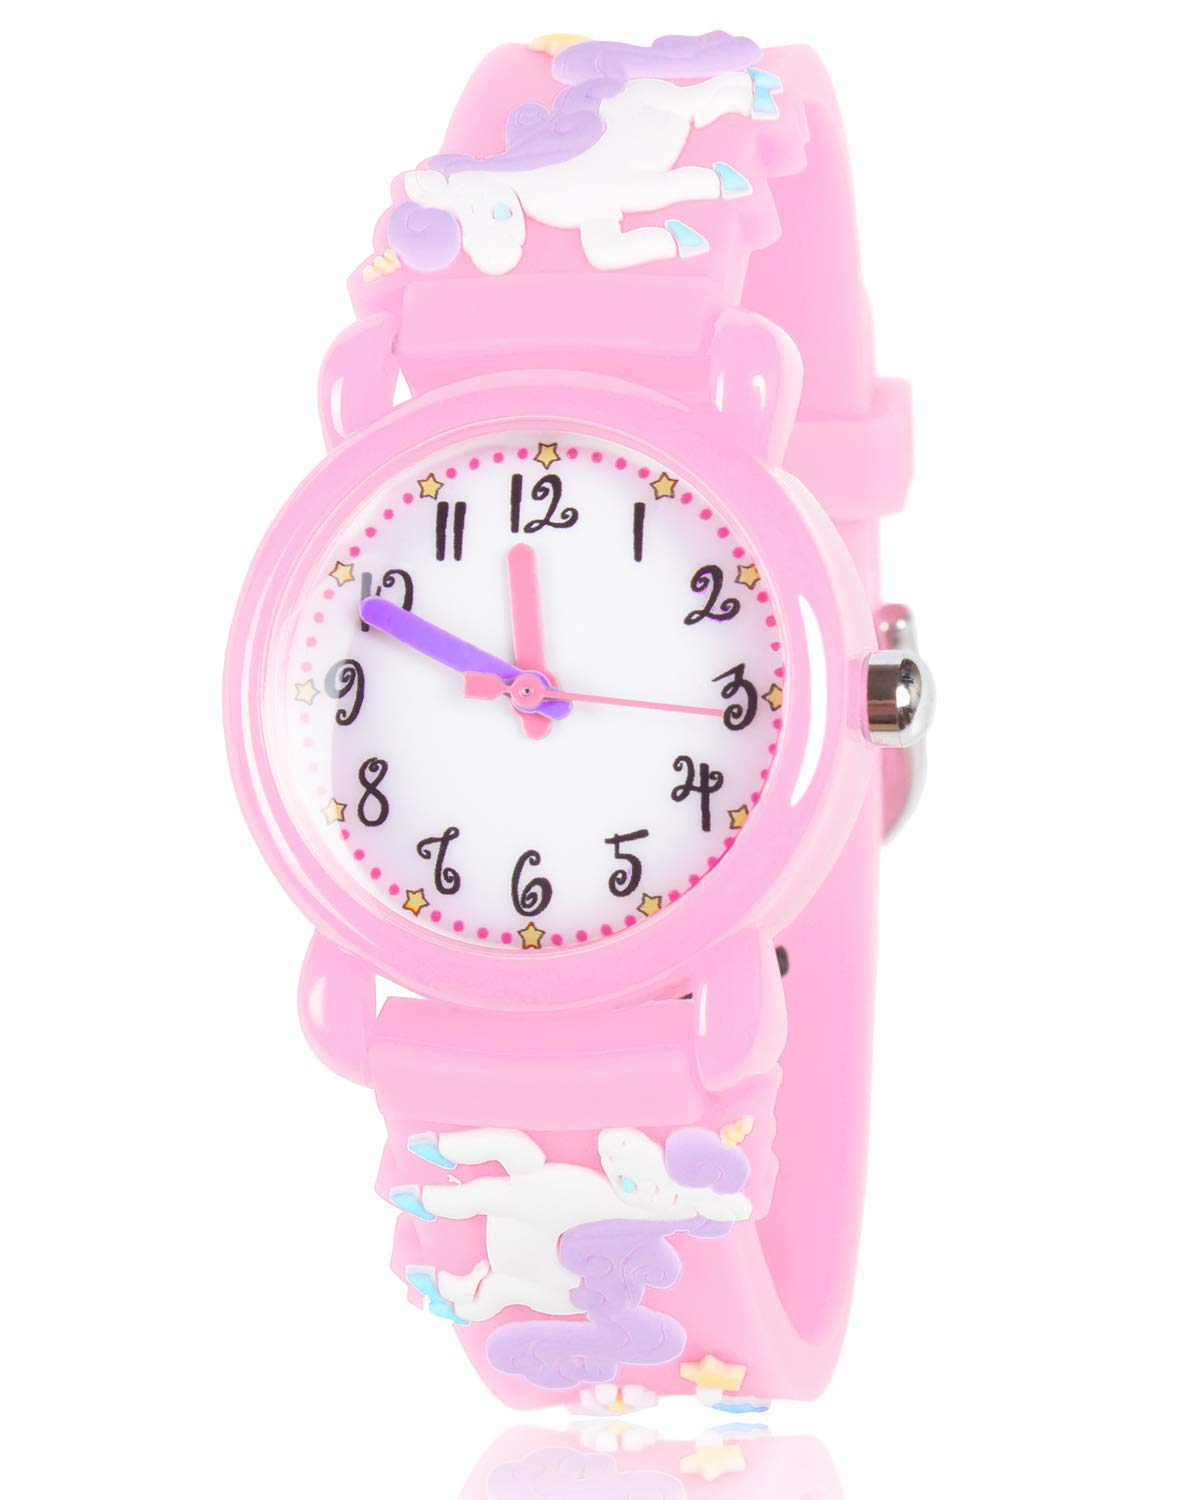 Dodosky Unicorn Gifts for 2 3 4 5 6 7 Year Old Girls, Gifts for 2 3 4 5 6 7 Year Old Girls Watch by Dodosky